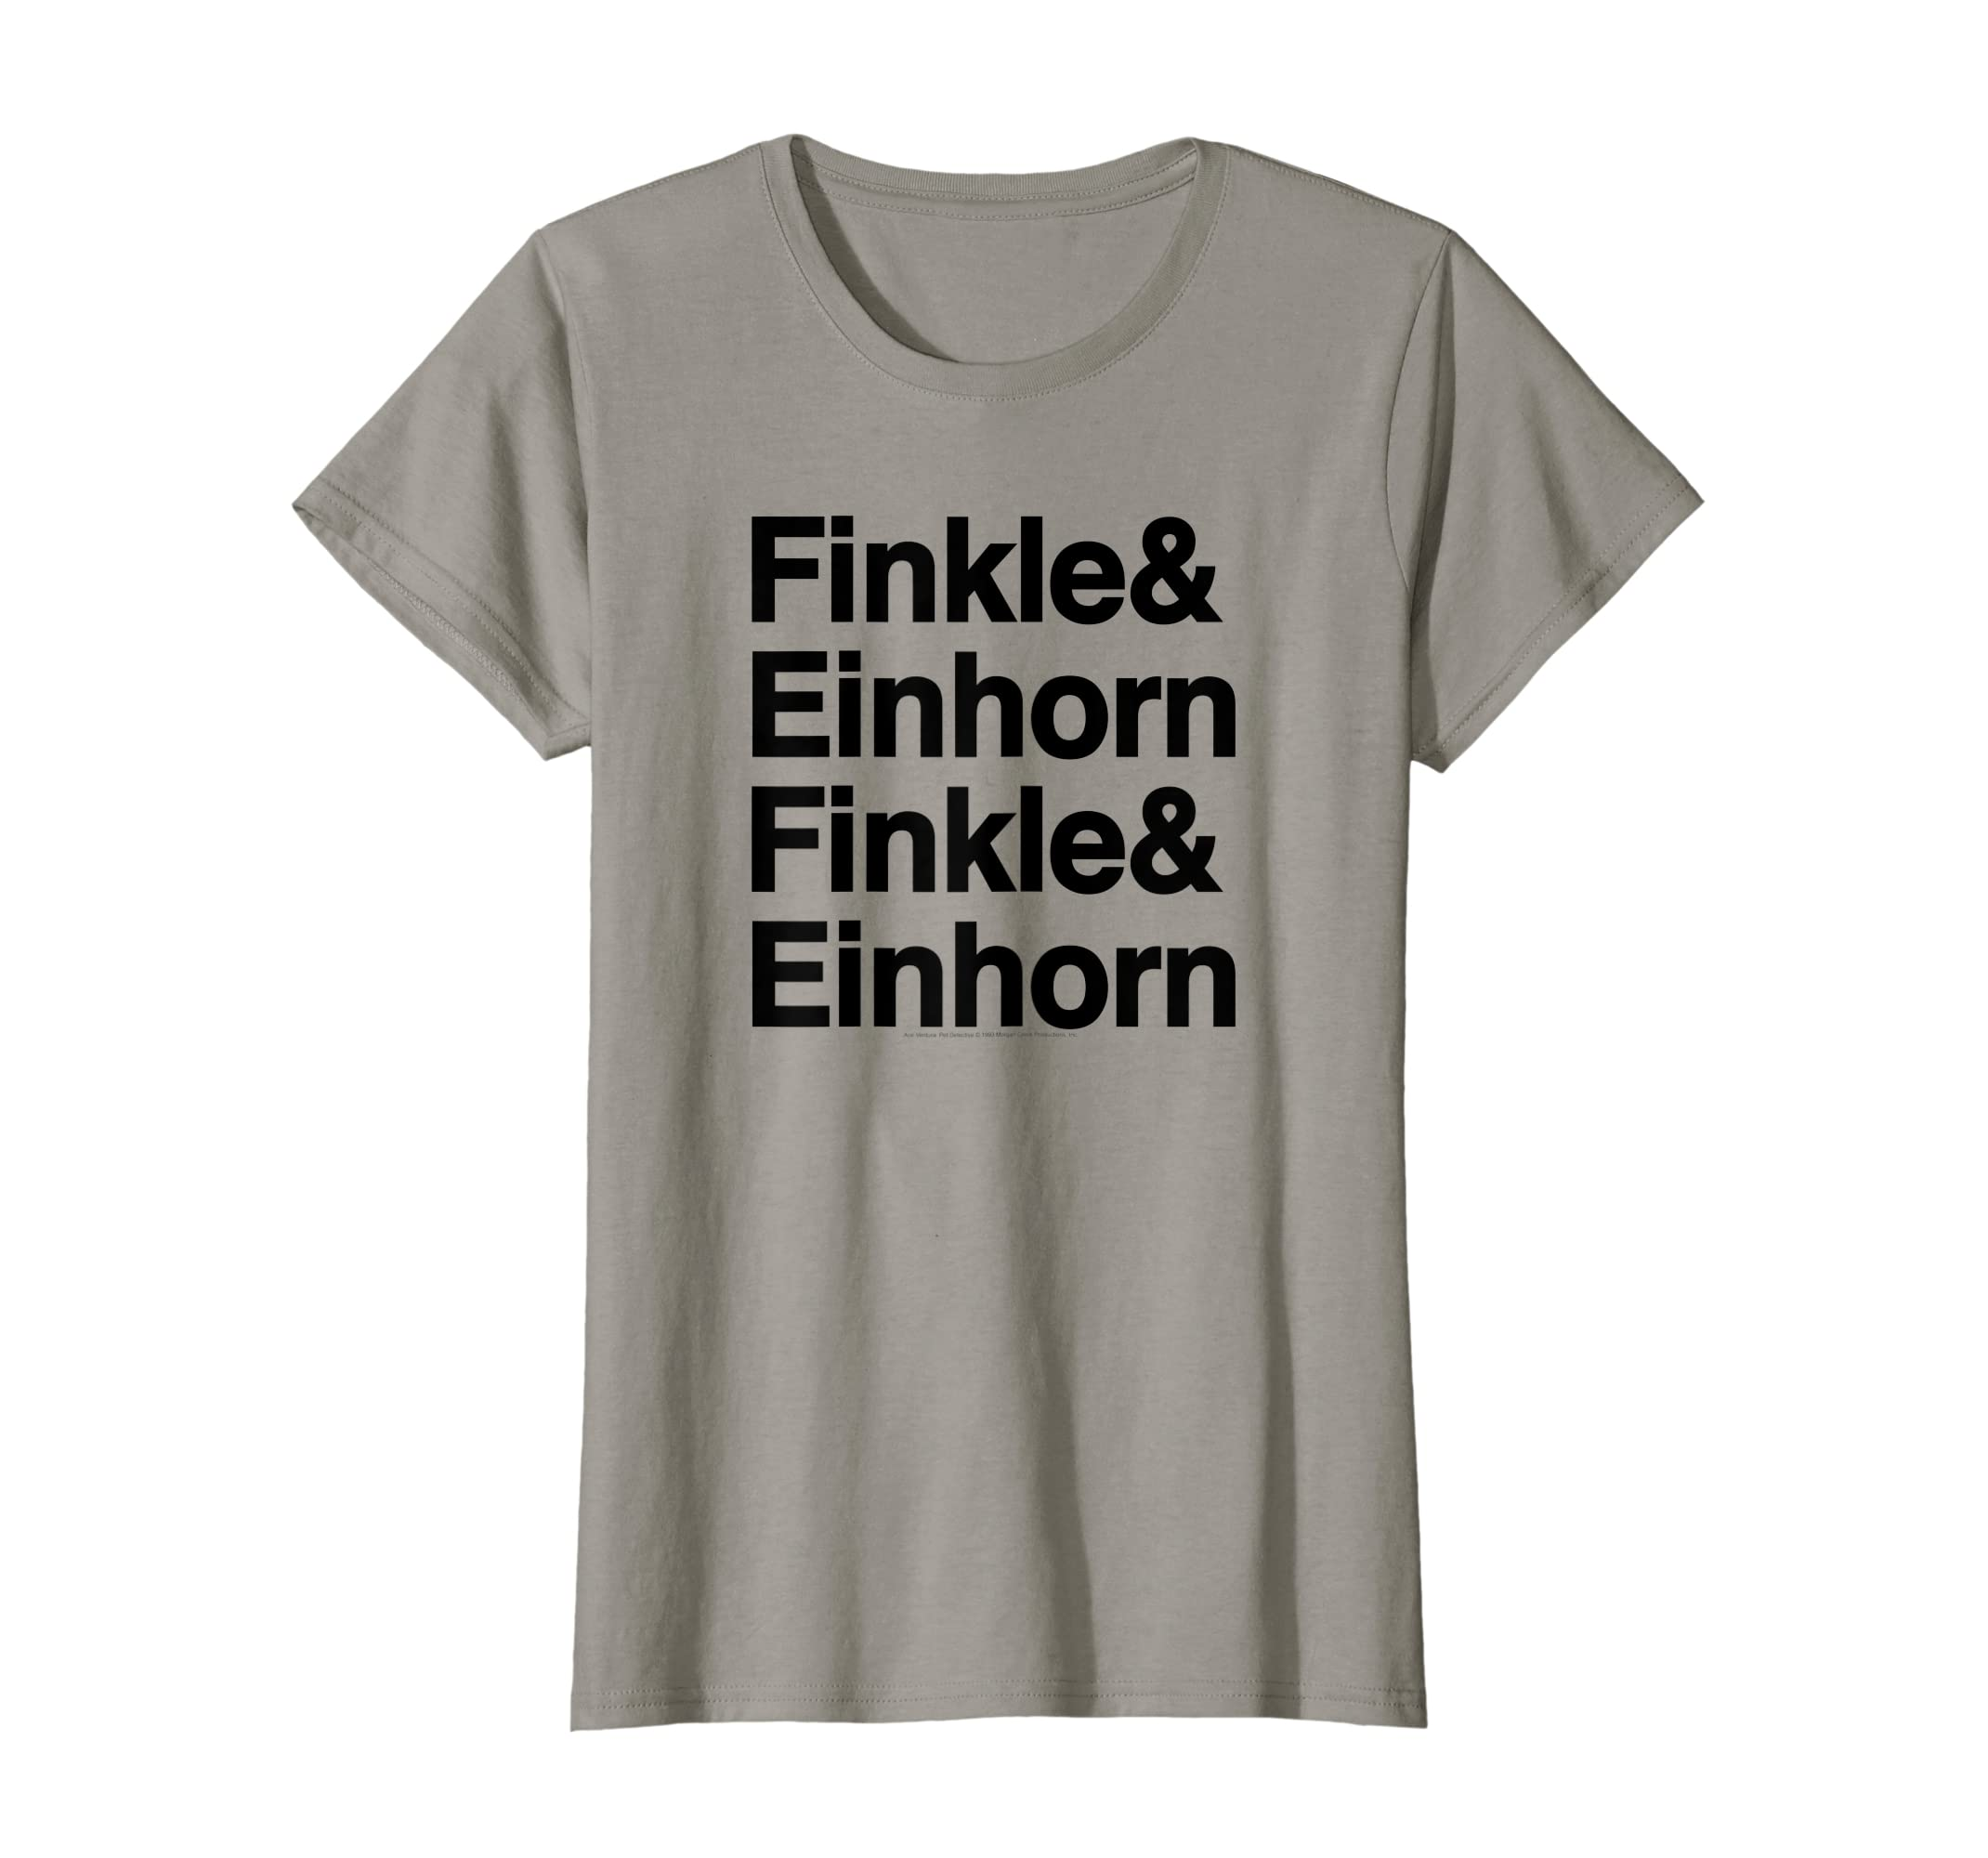 32bd42c281c793 Amazon.com: Ace Ventura Finkle is Einhorn T-Shirt: Clothing